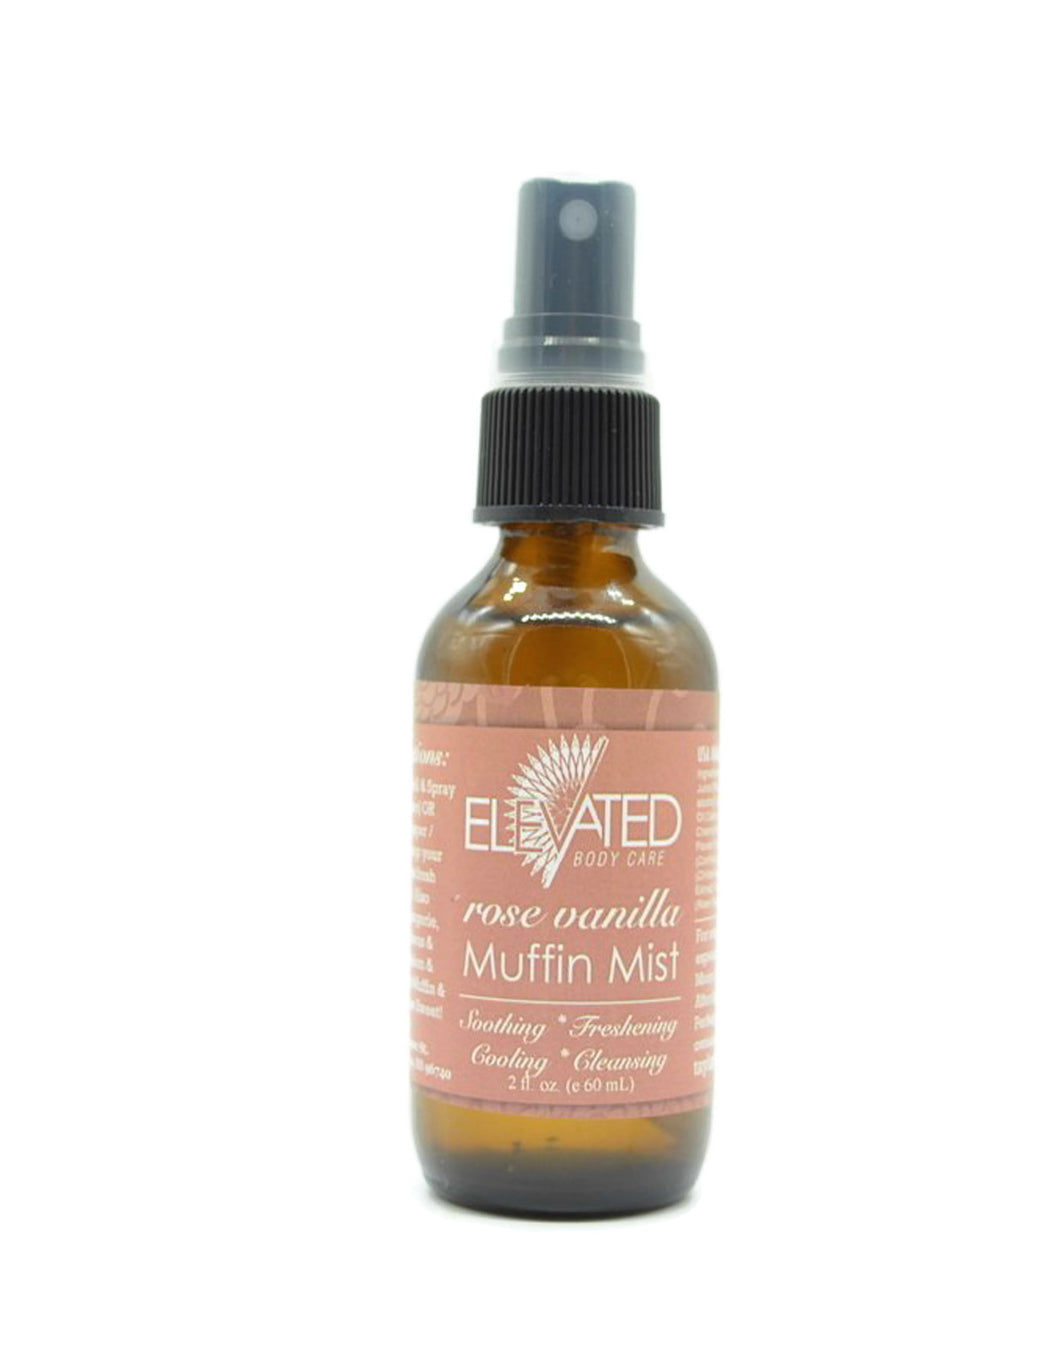 ELEVATED - Muffin Mist